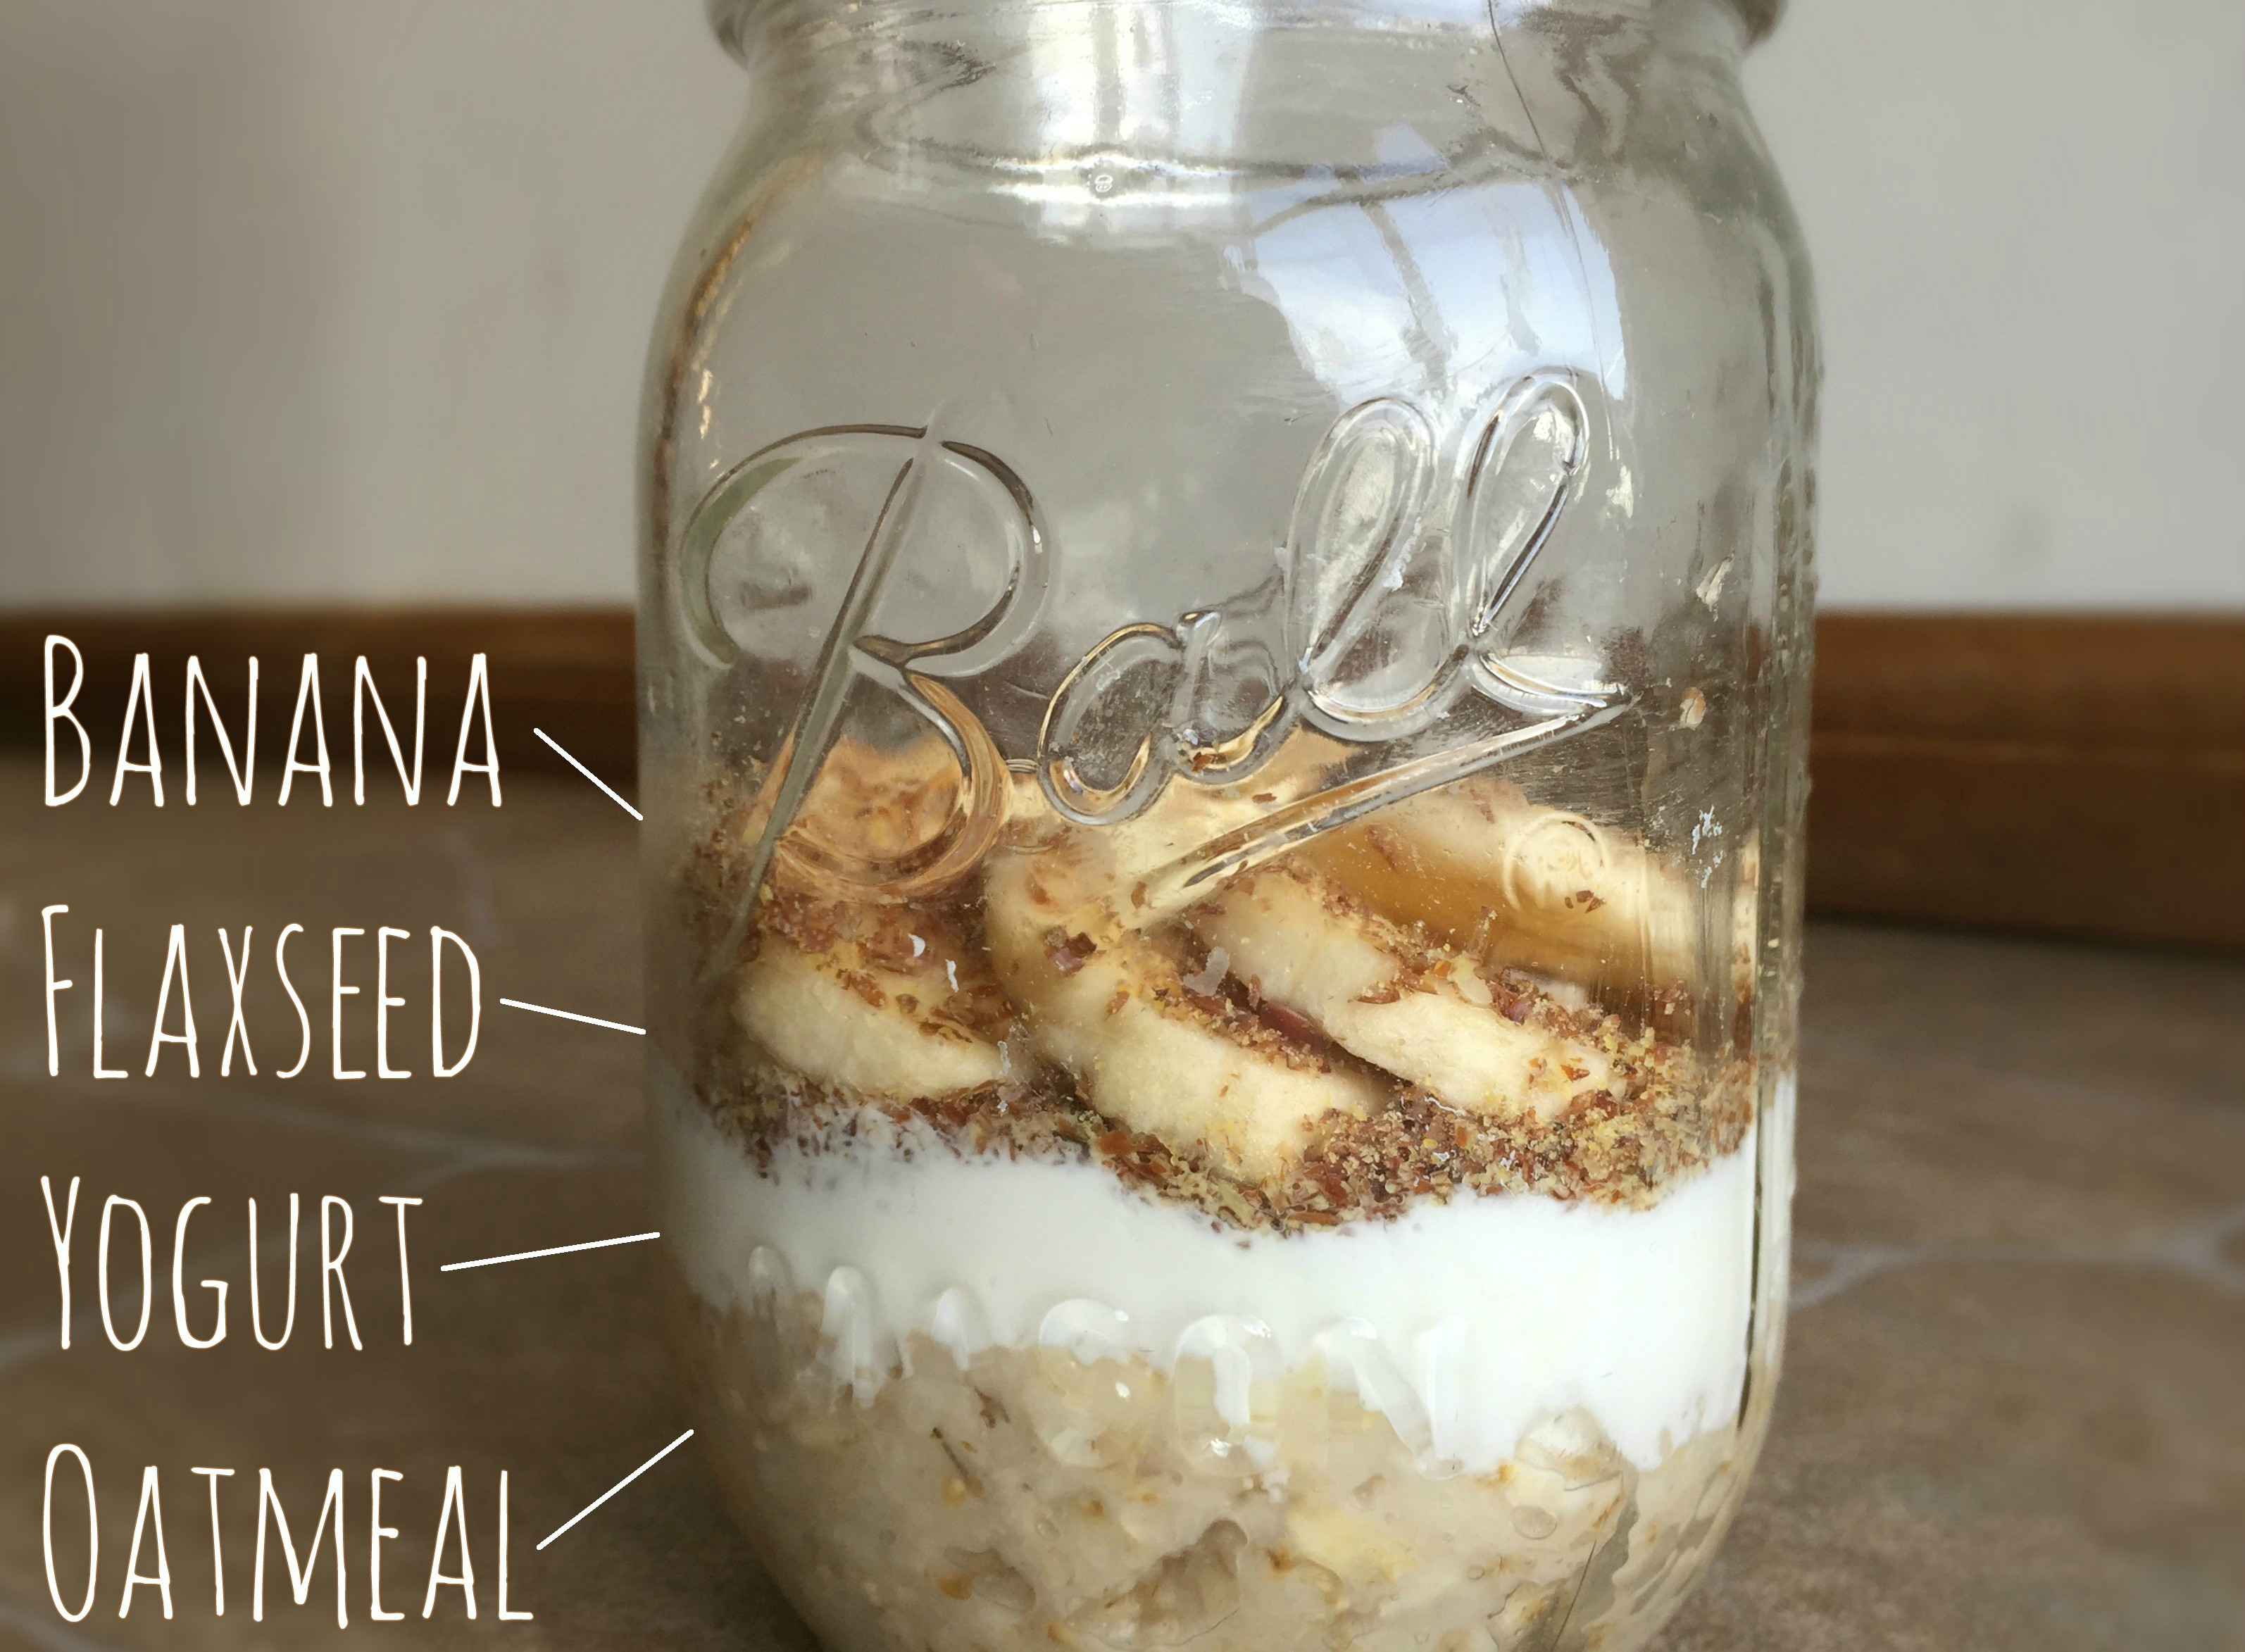 Greek yogurt mason jar glass diy protein flaxseed breakfast snack blueberry banana cinnamon